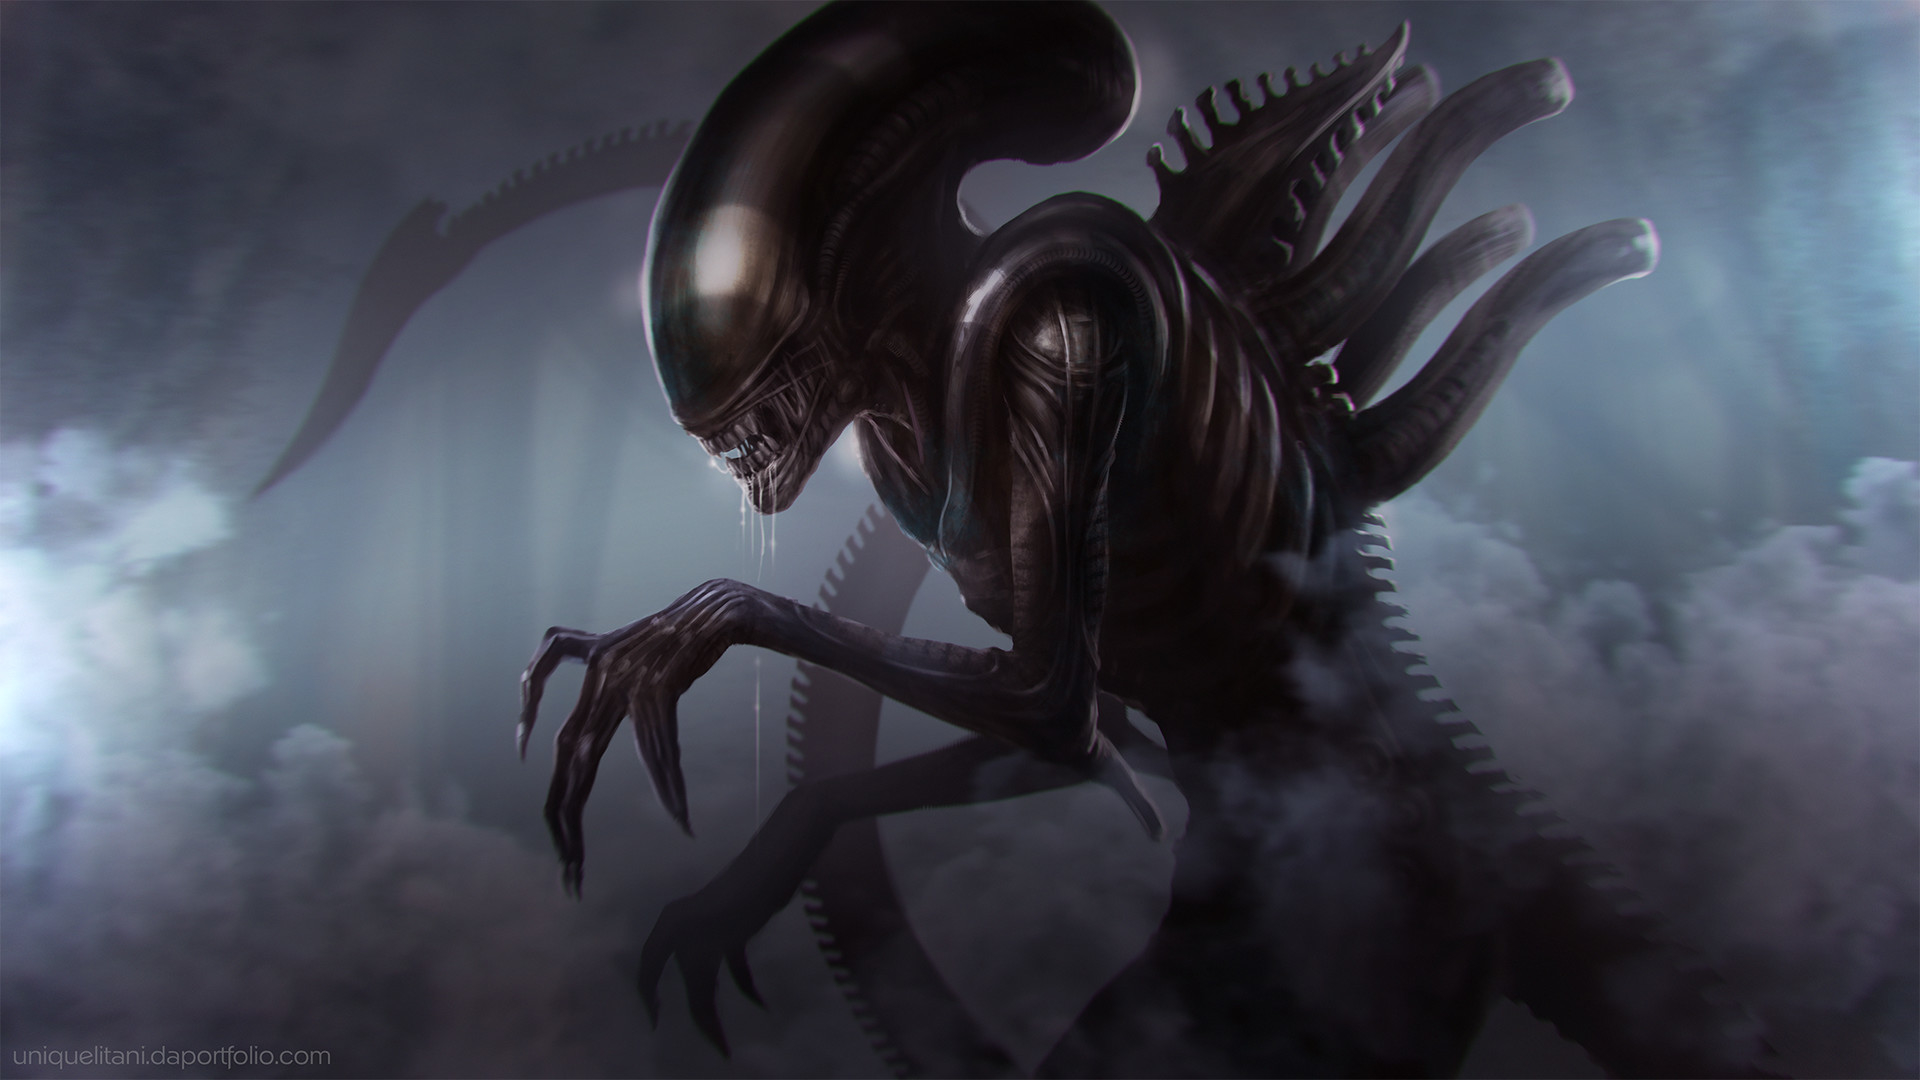 Xenomorph Queen Wallpaper Hd Fantasy 4k Wallpapers Images Photos And Background